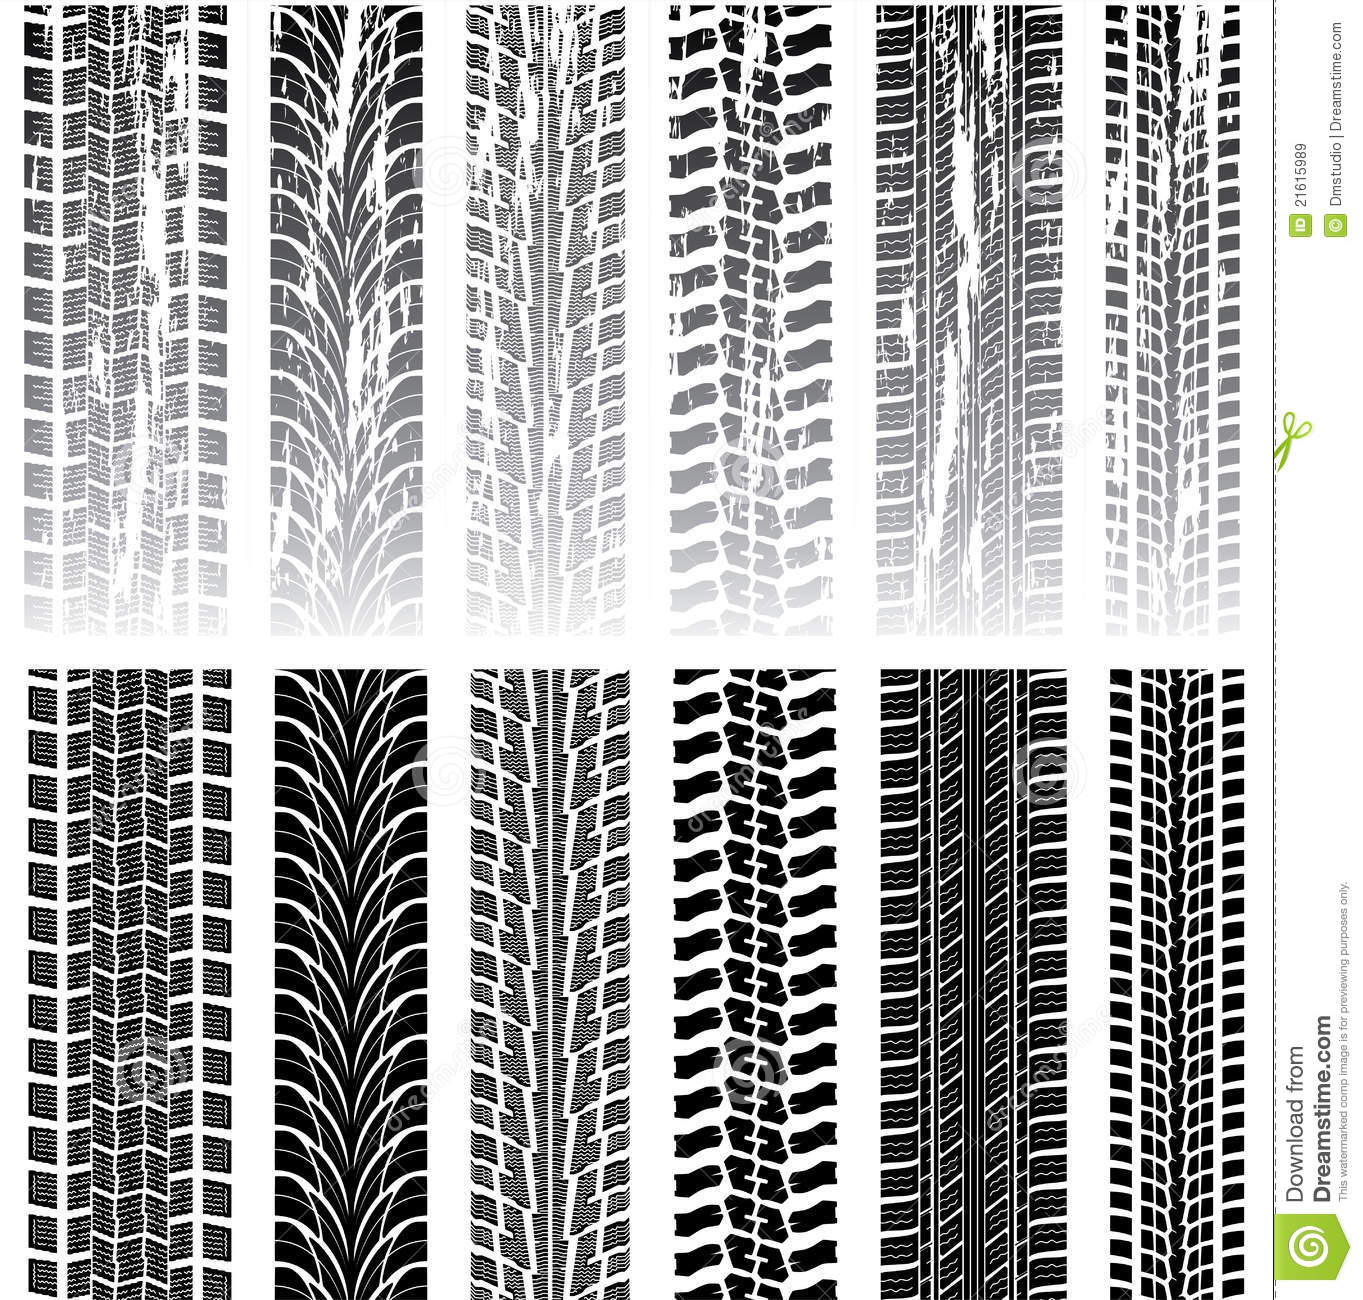 Set Of Tire Prints Royalty Free Stock Images - Image: 21615989